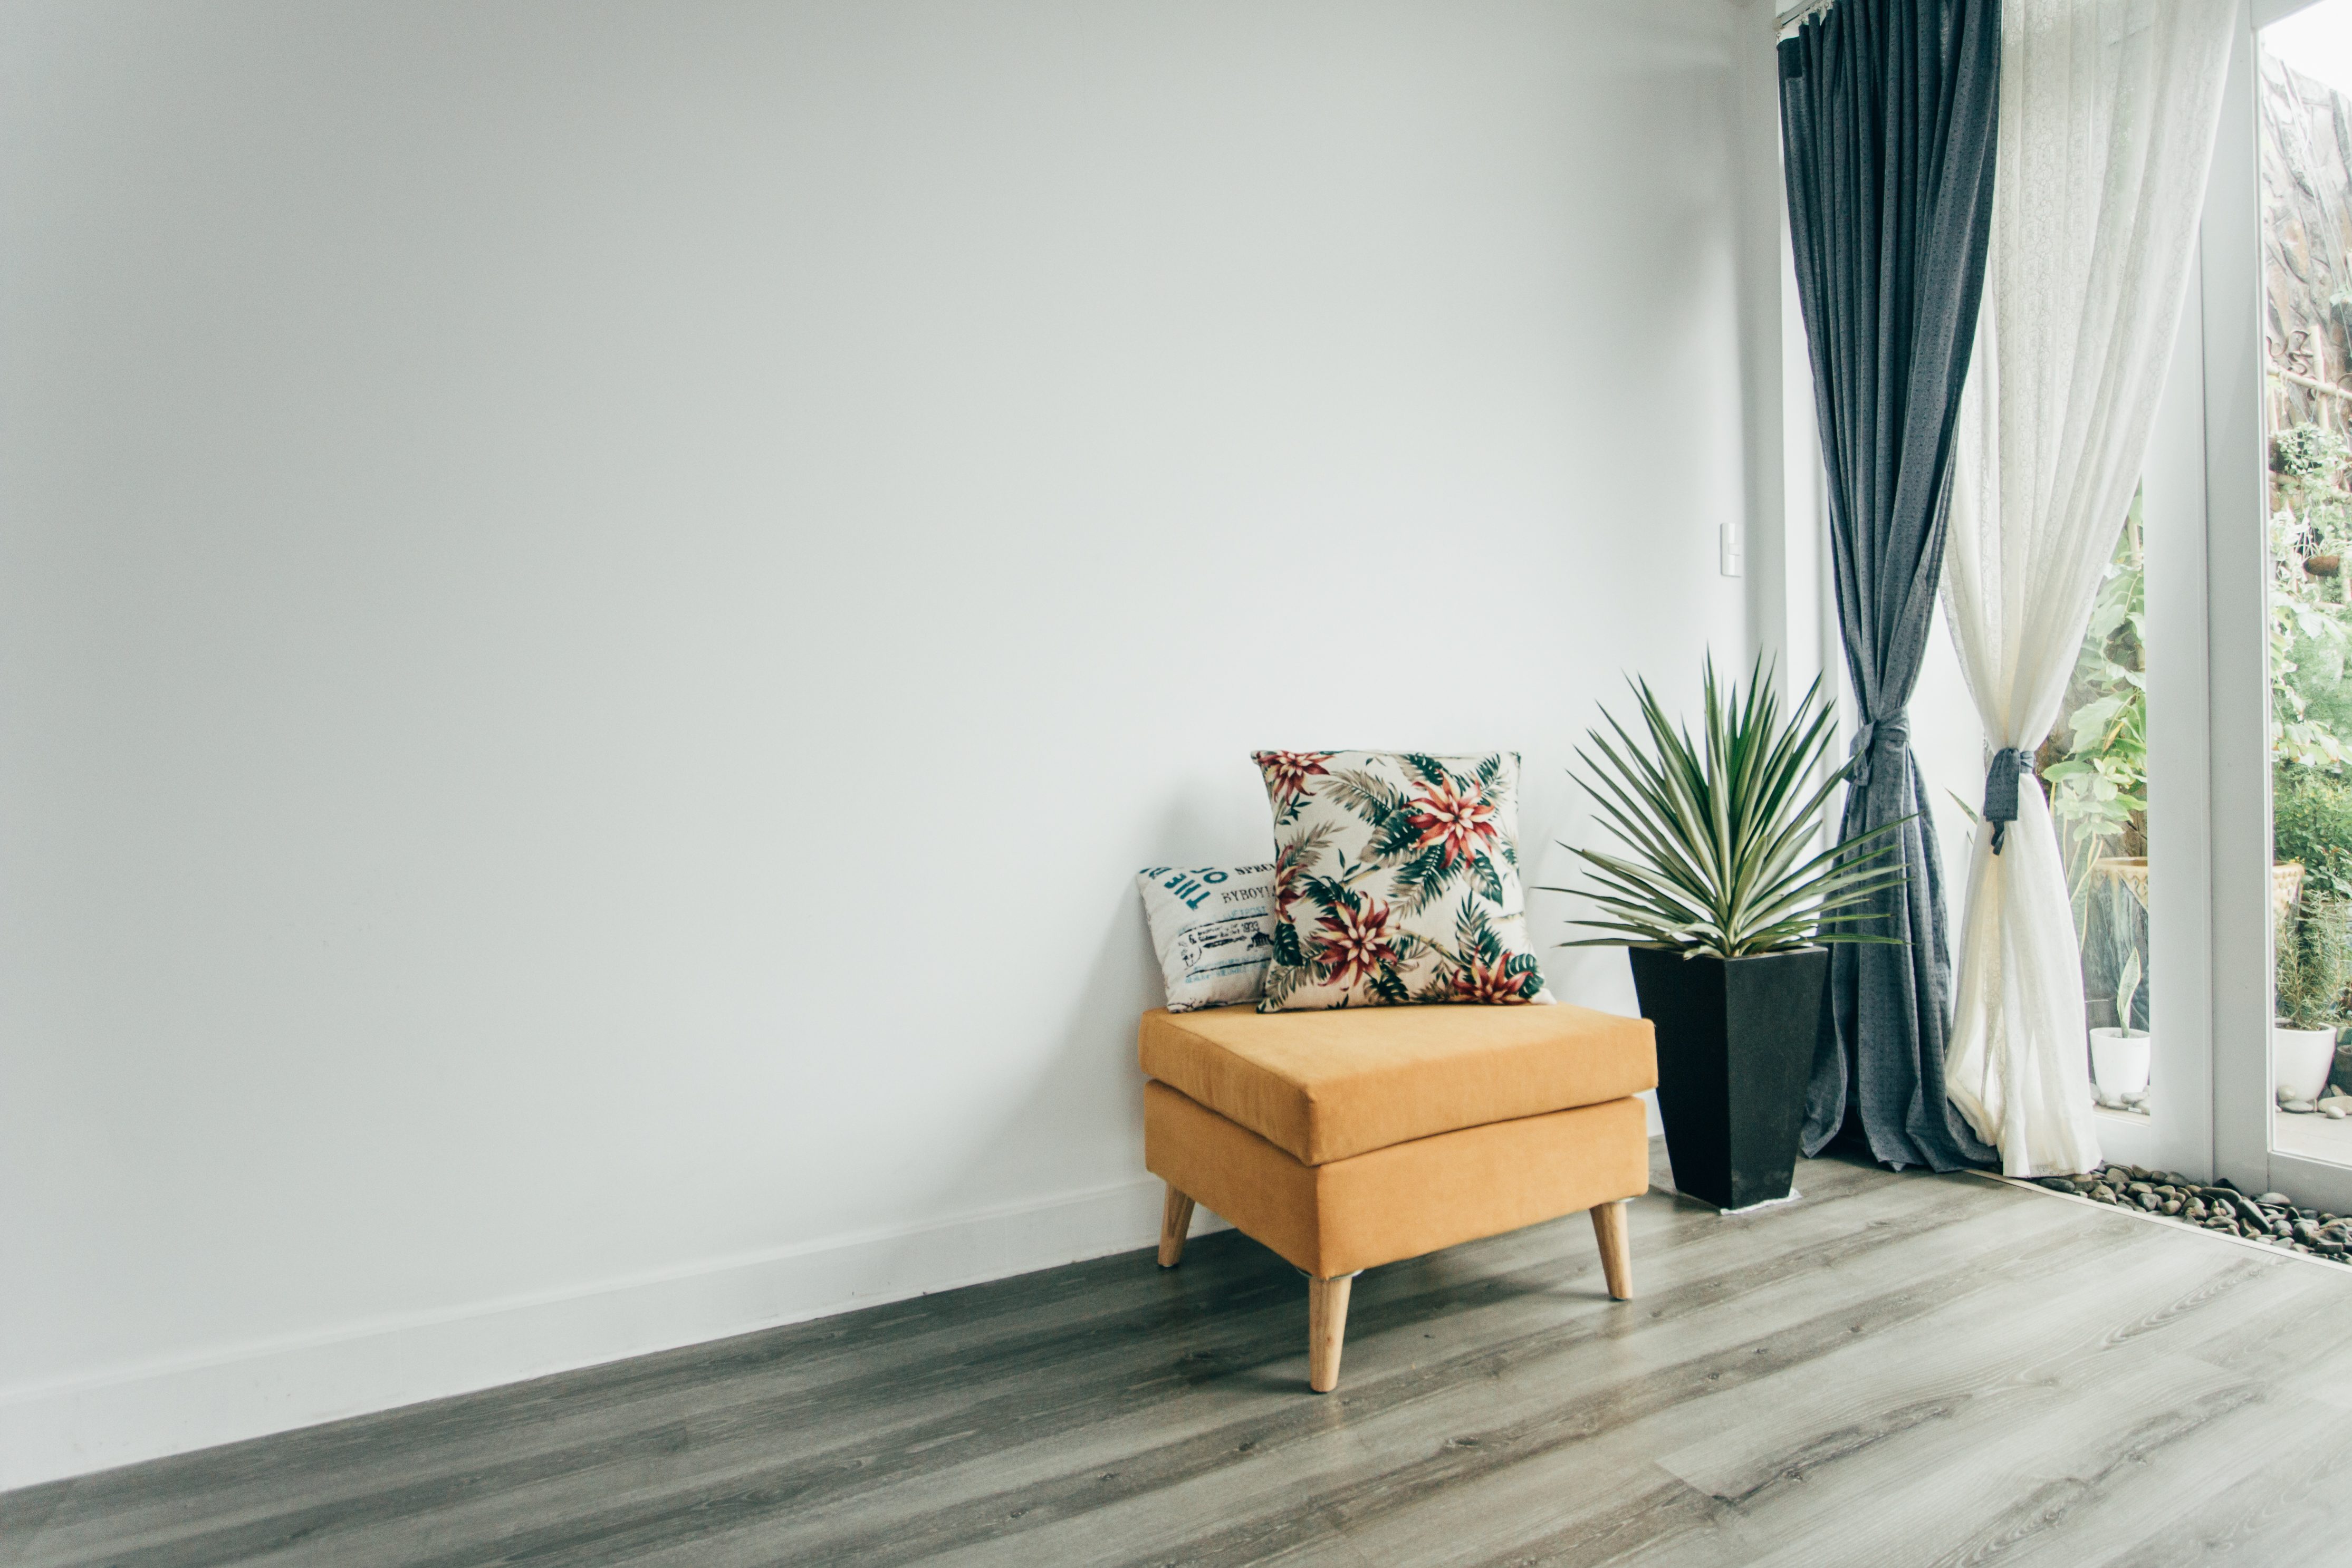 Hanging Curtains From The Ceiling Vs A Window Home Guides